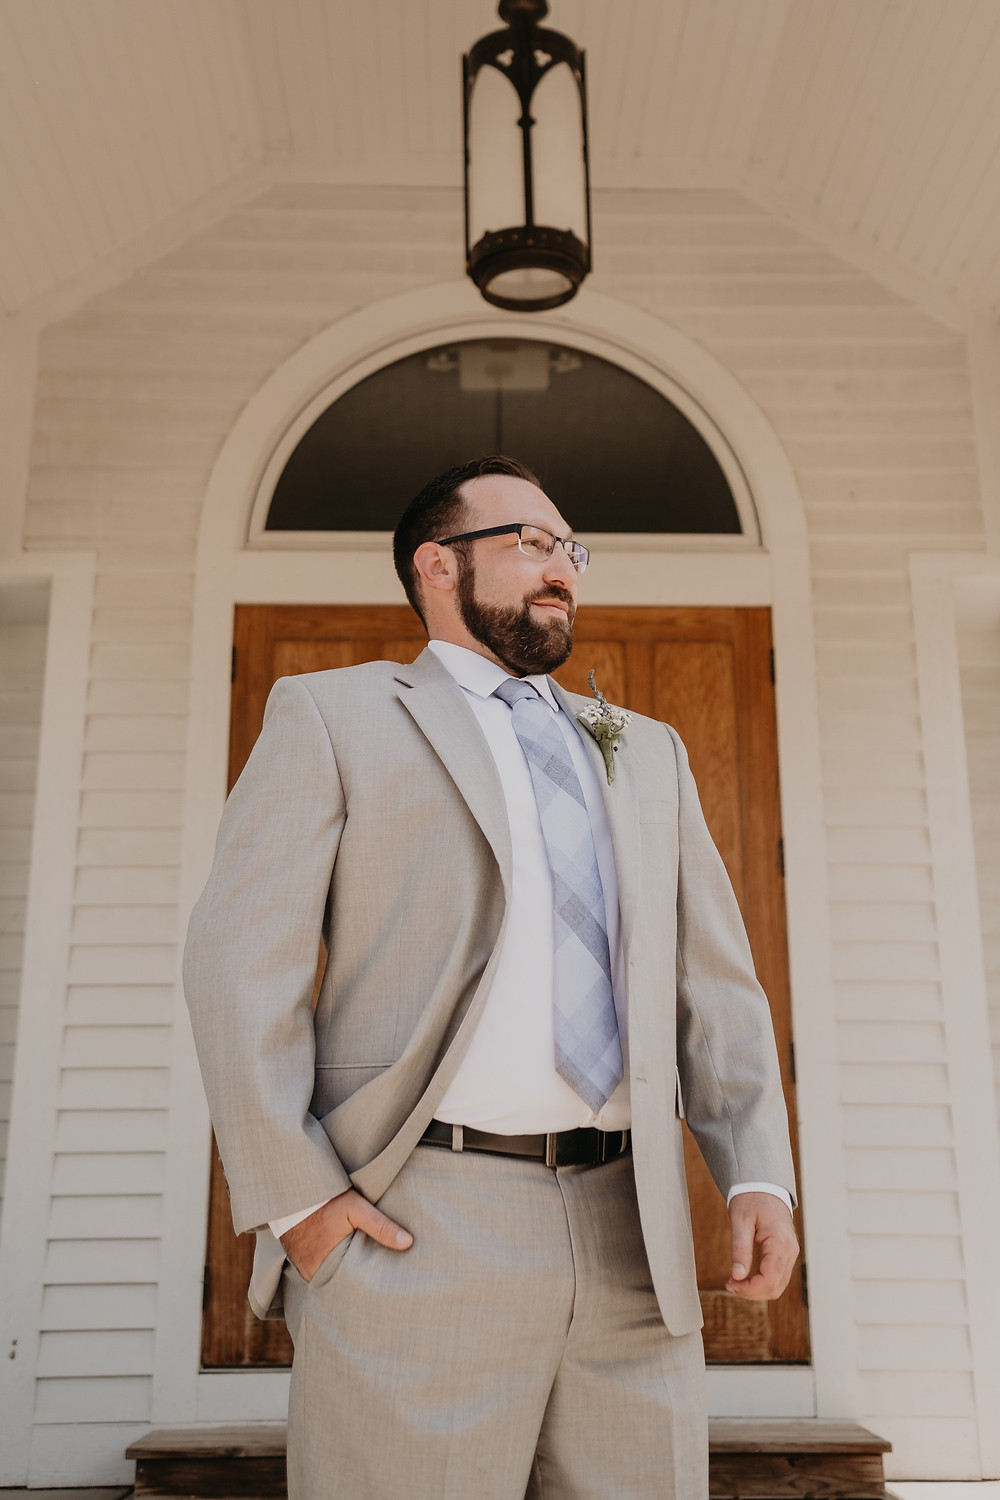 Portrait of groom at Meridian Historical Village. Photographed by Nicole Leanne Photography.